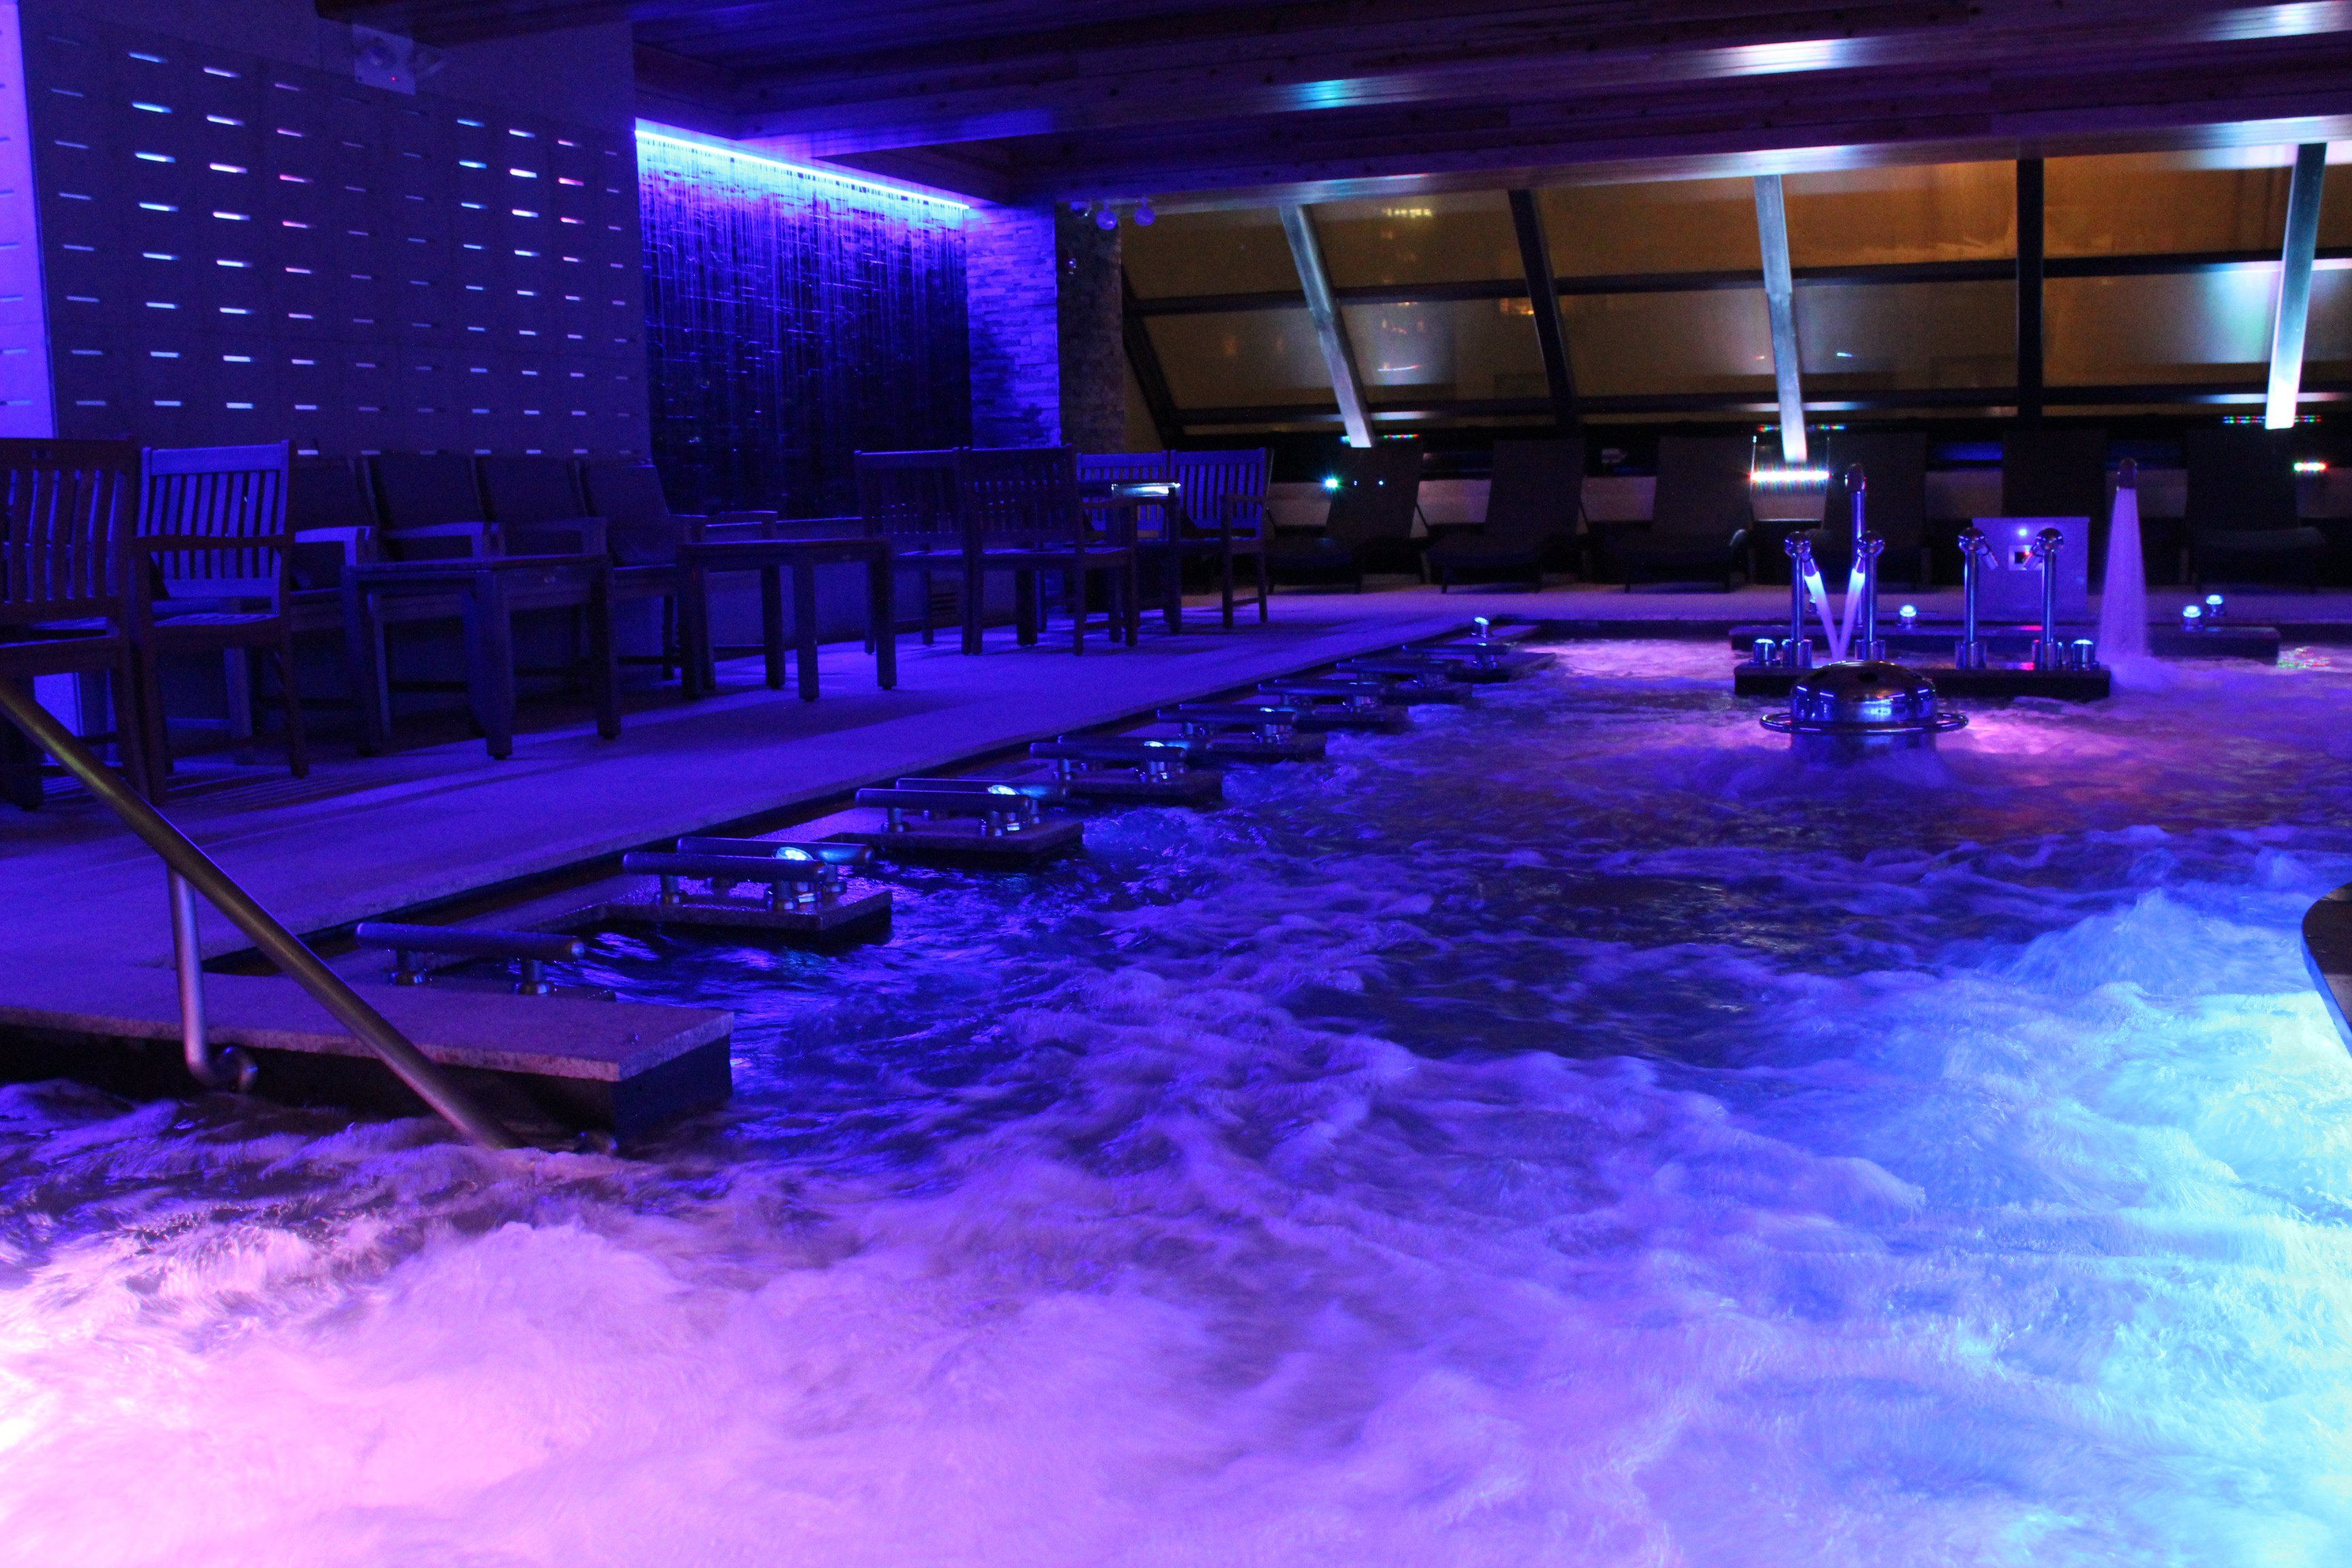 Check Out The New Midtown Spa With A Rooftop Hot Tub Swim Up Bar And Sauna Valley Spa Swim Up Bar Castle